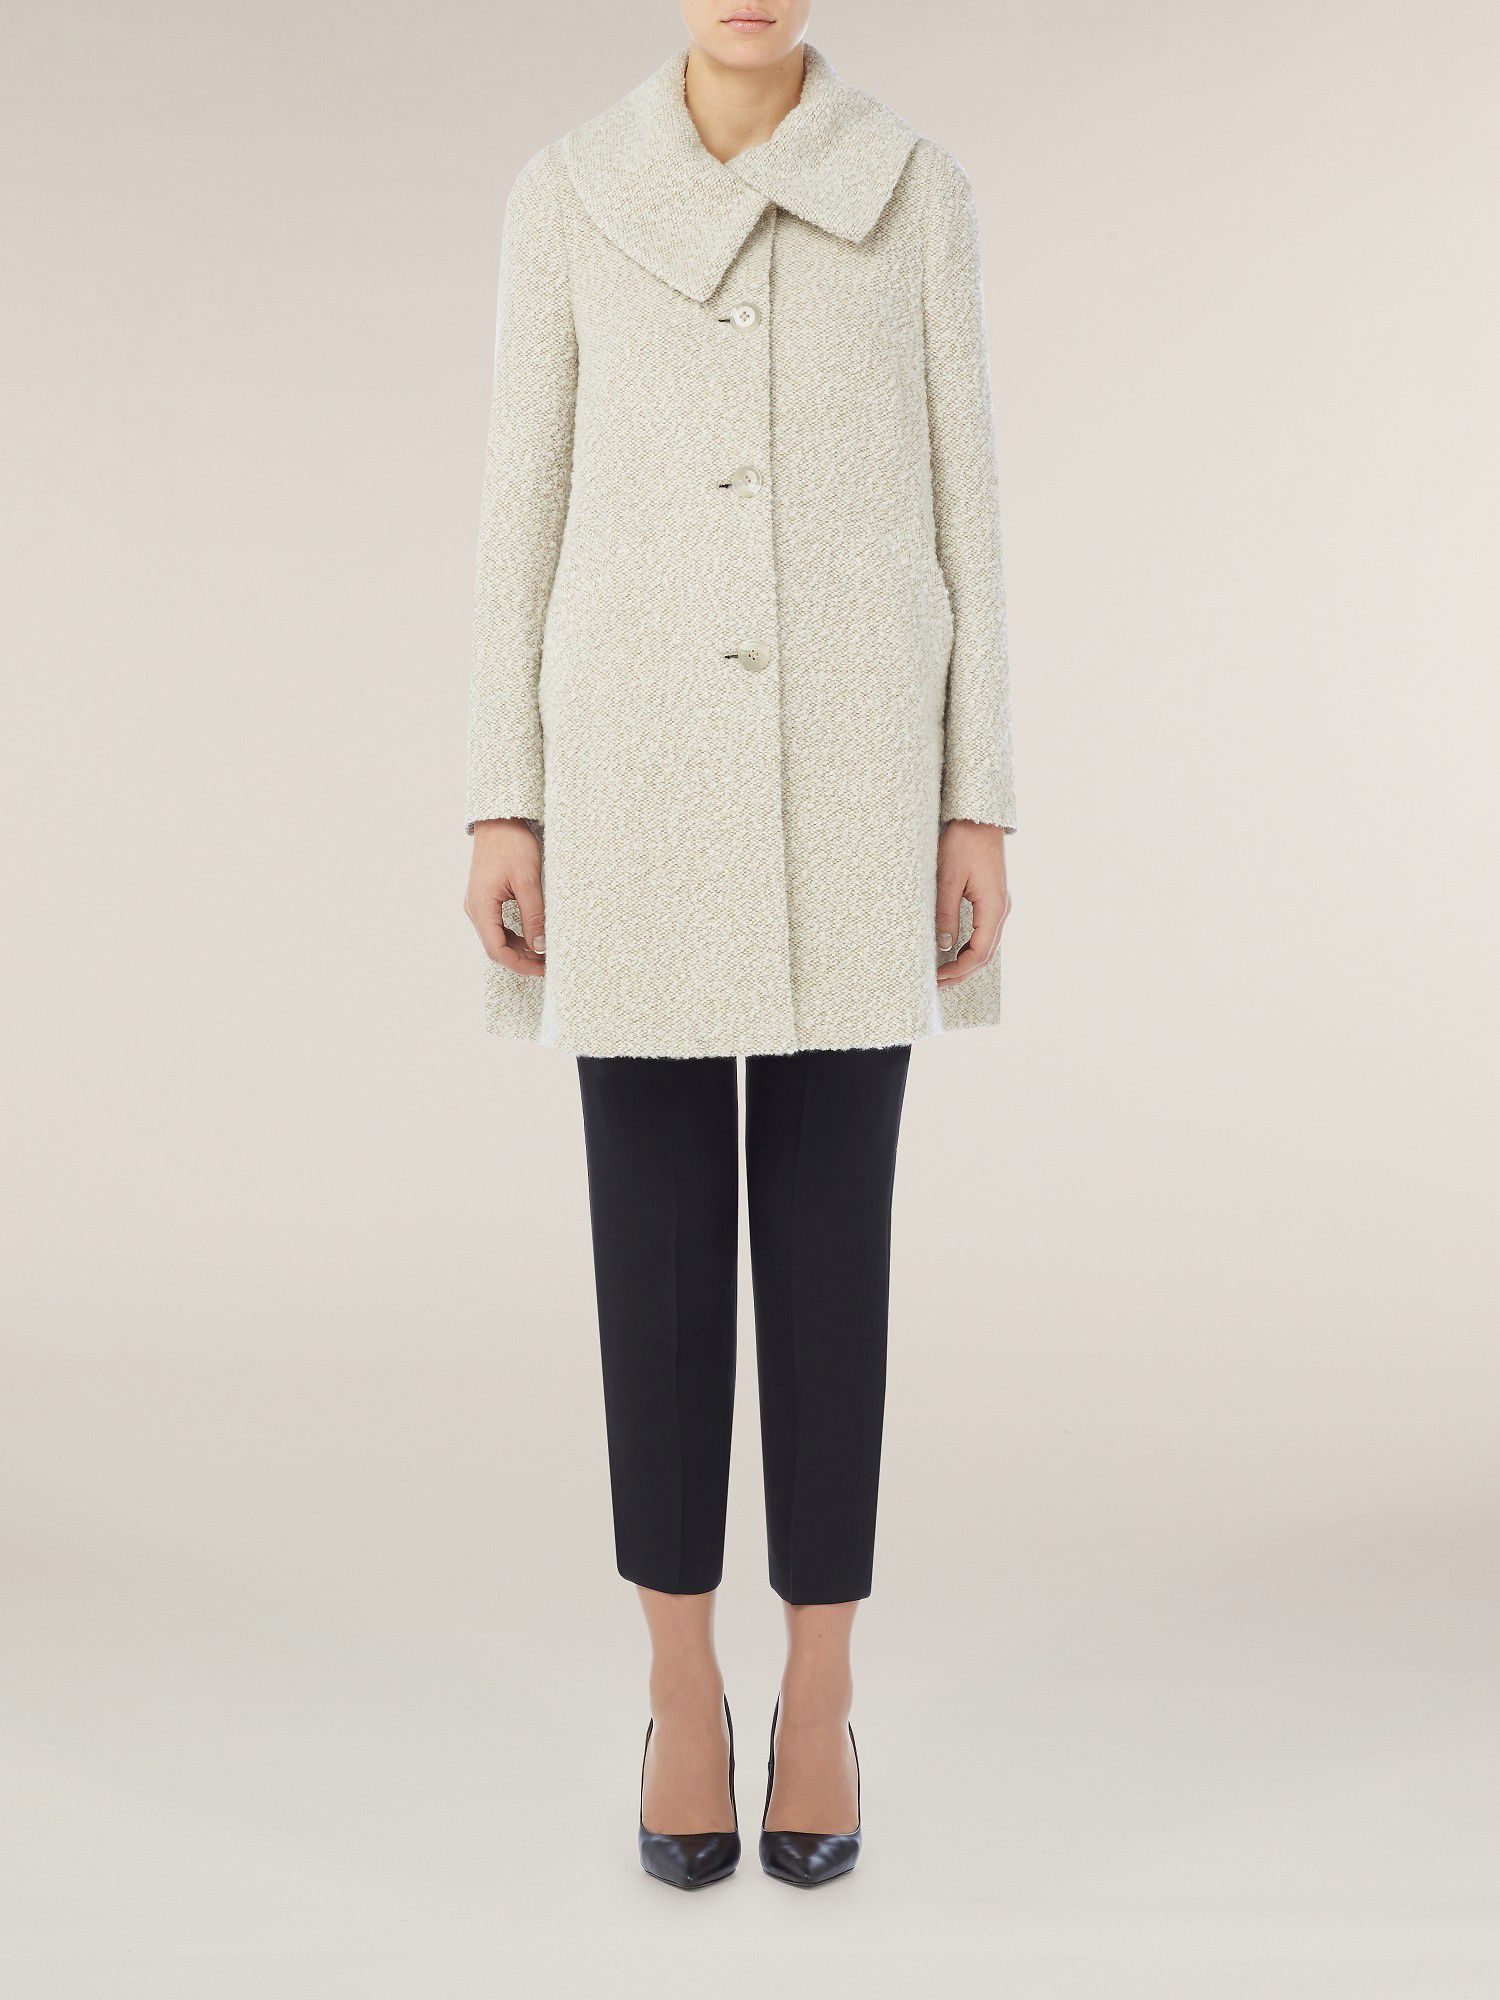 Oatmeal boucle swing coat